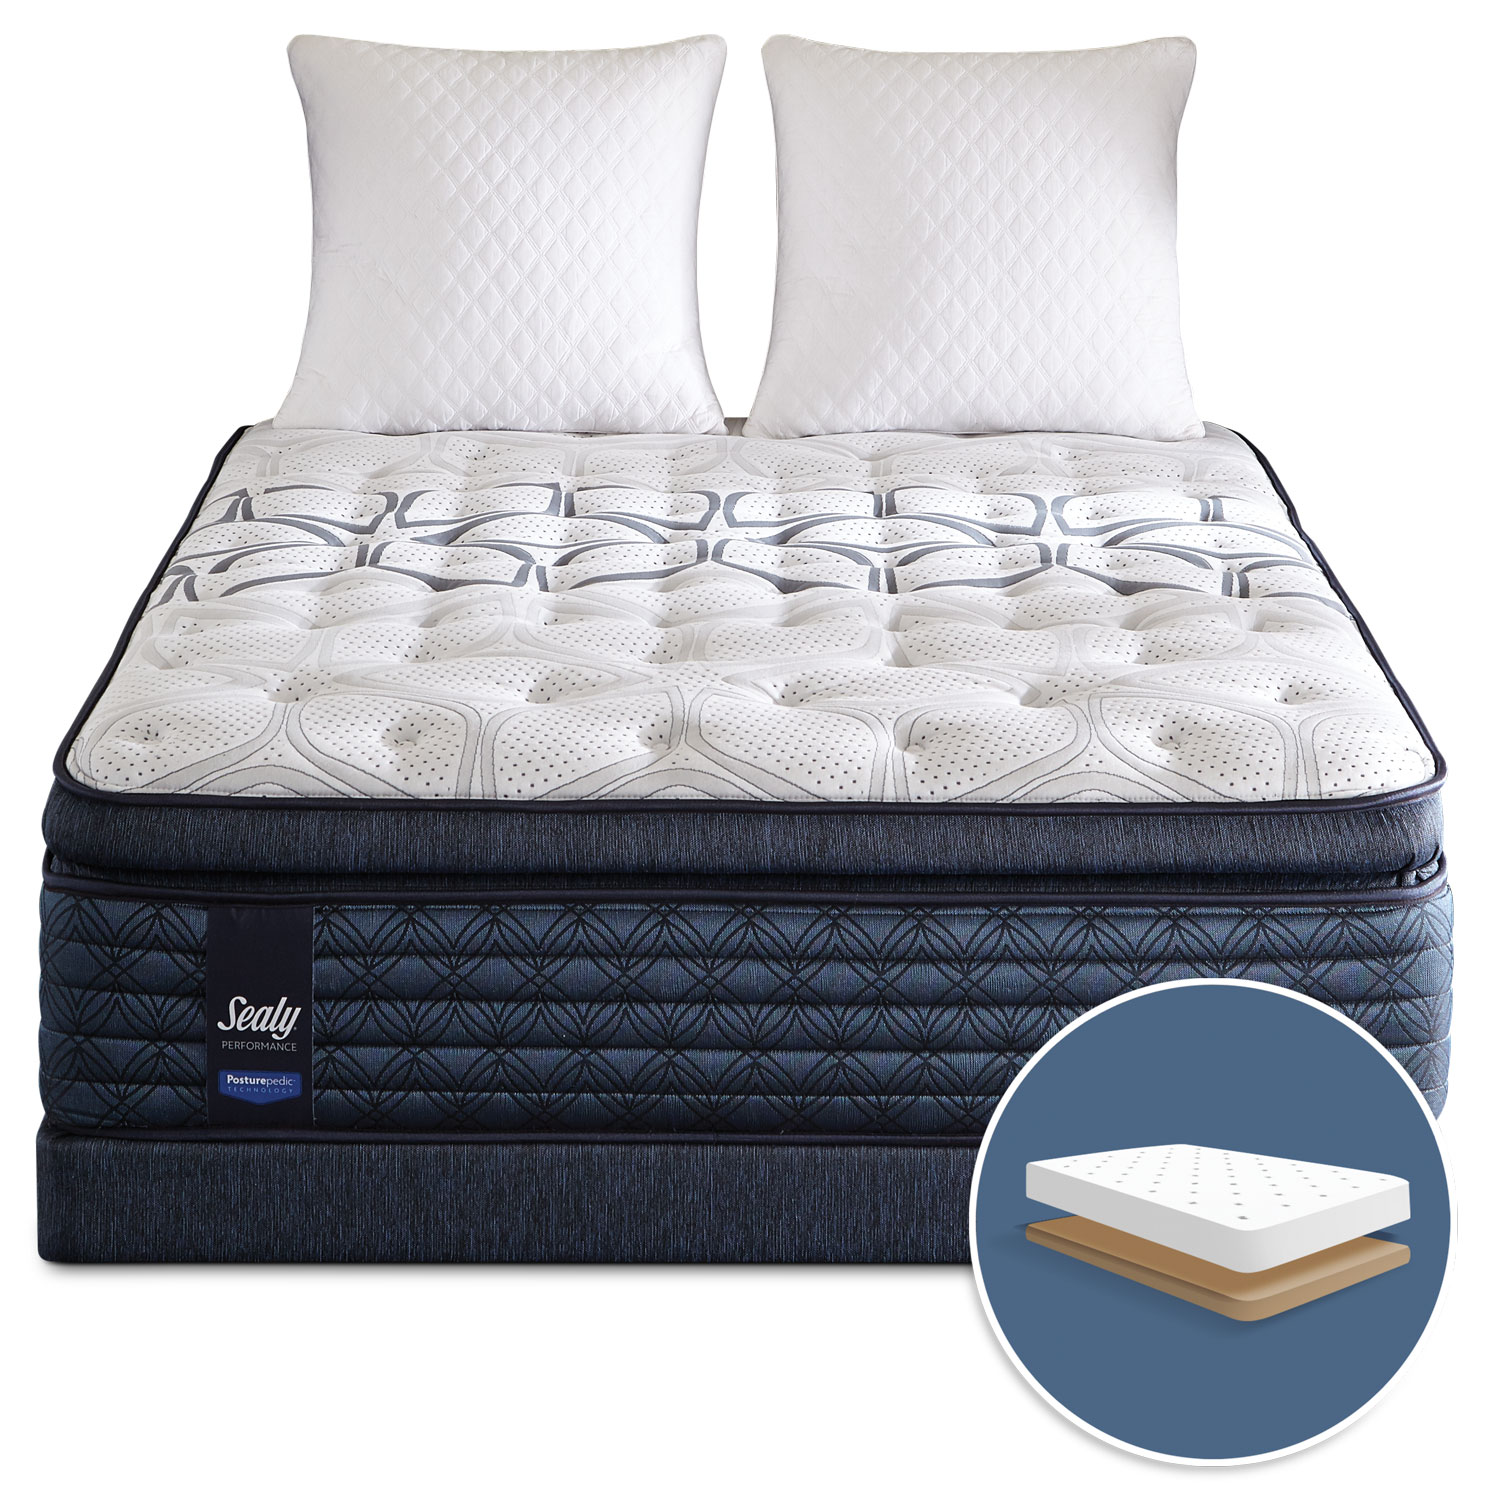 Sealy Proback Cantania Euro Pillow Top Plush Low Profile King Mattress Set United Furniture